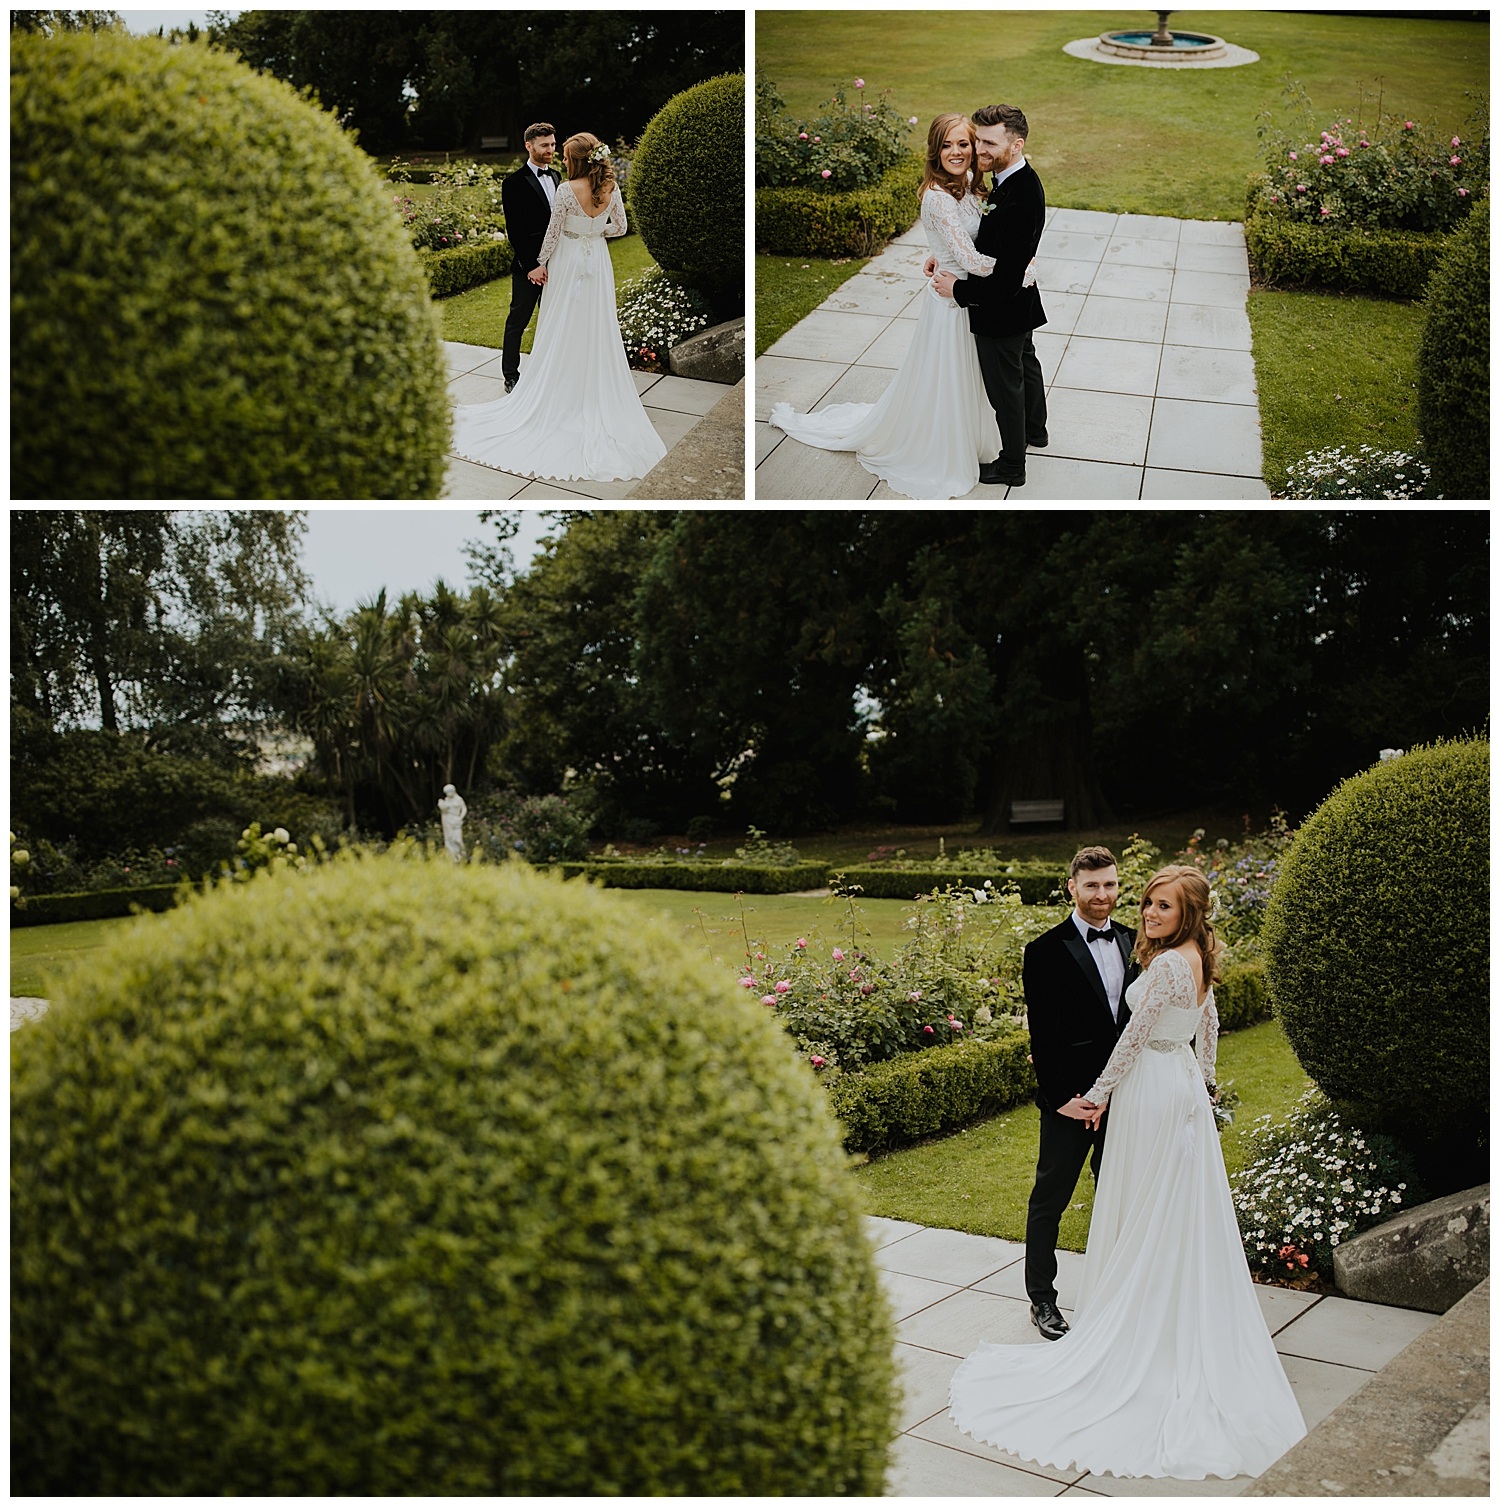 a&c_tinakilly_black_tie_wedding_photographer_livia_figueiredo_133.jpg